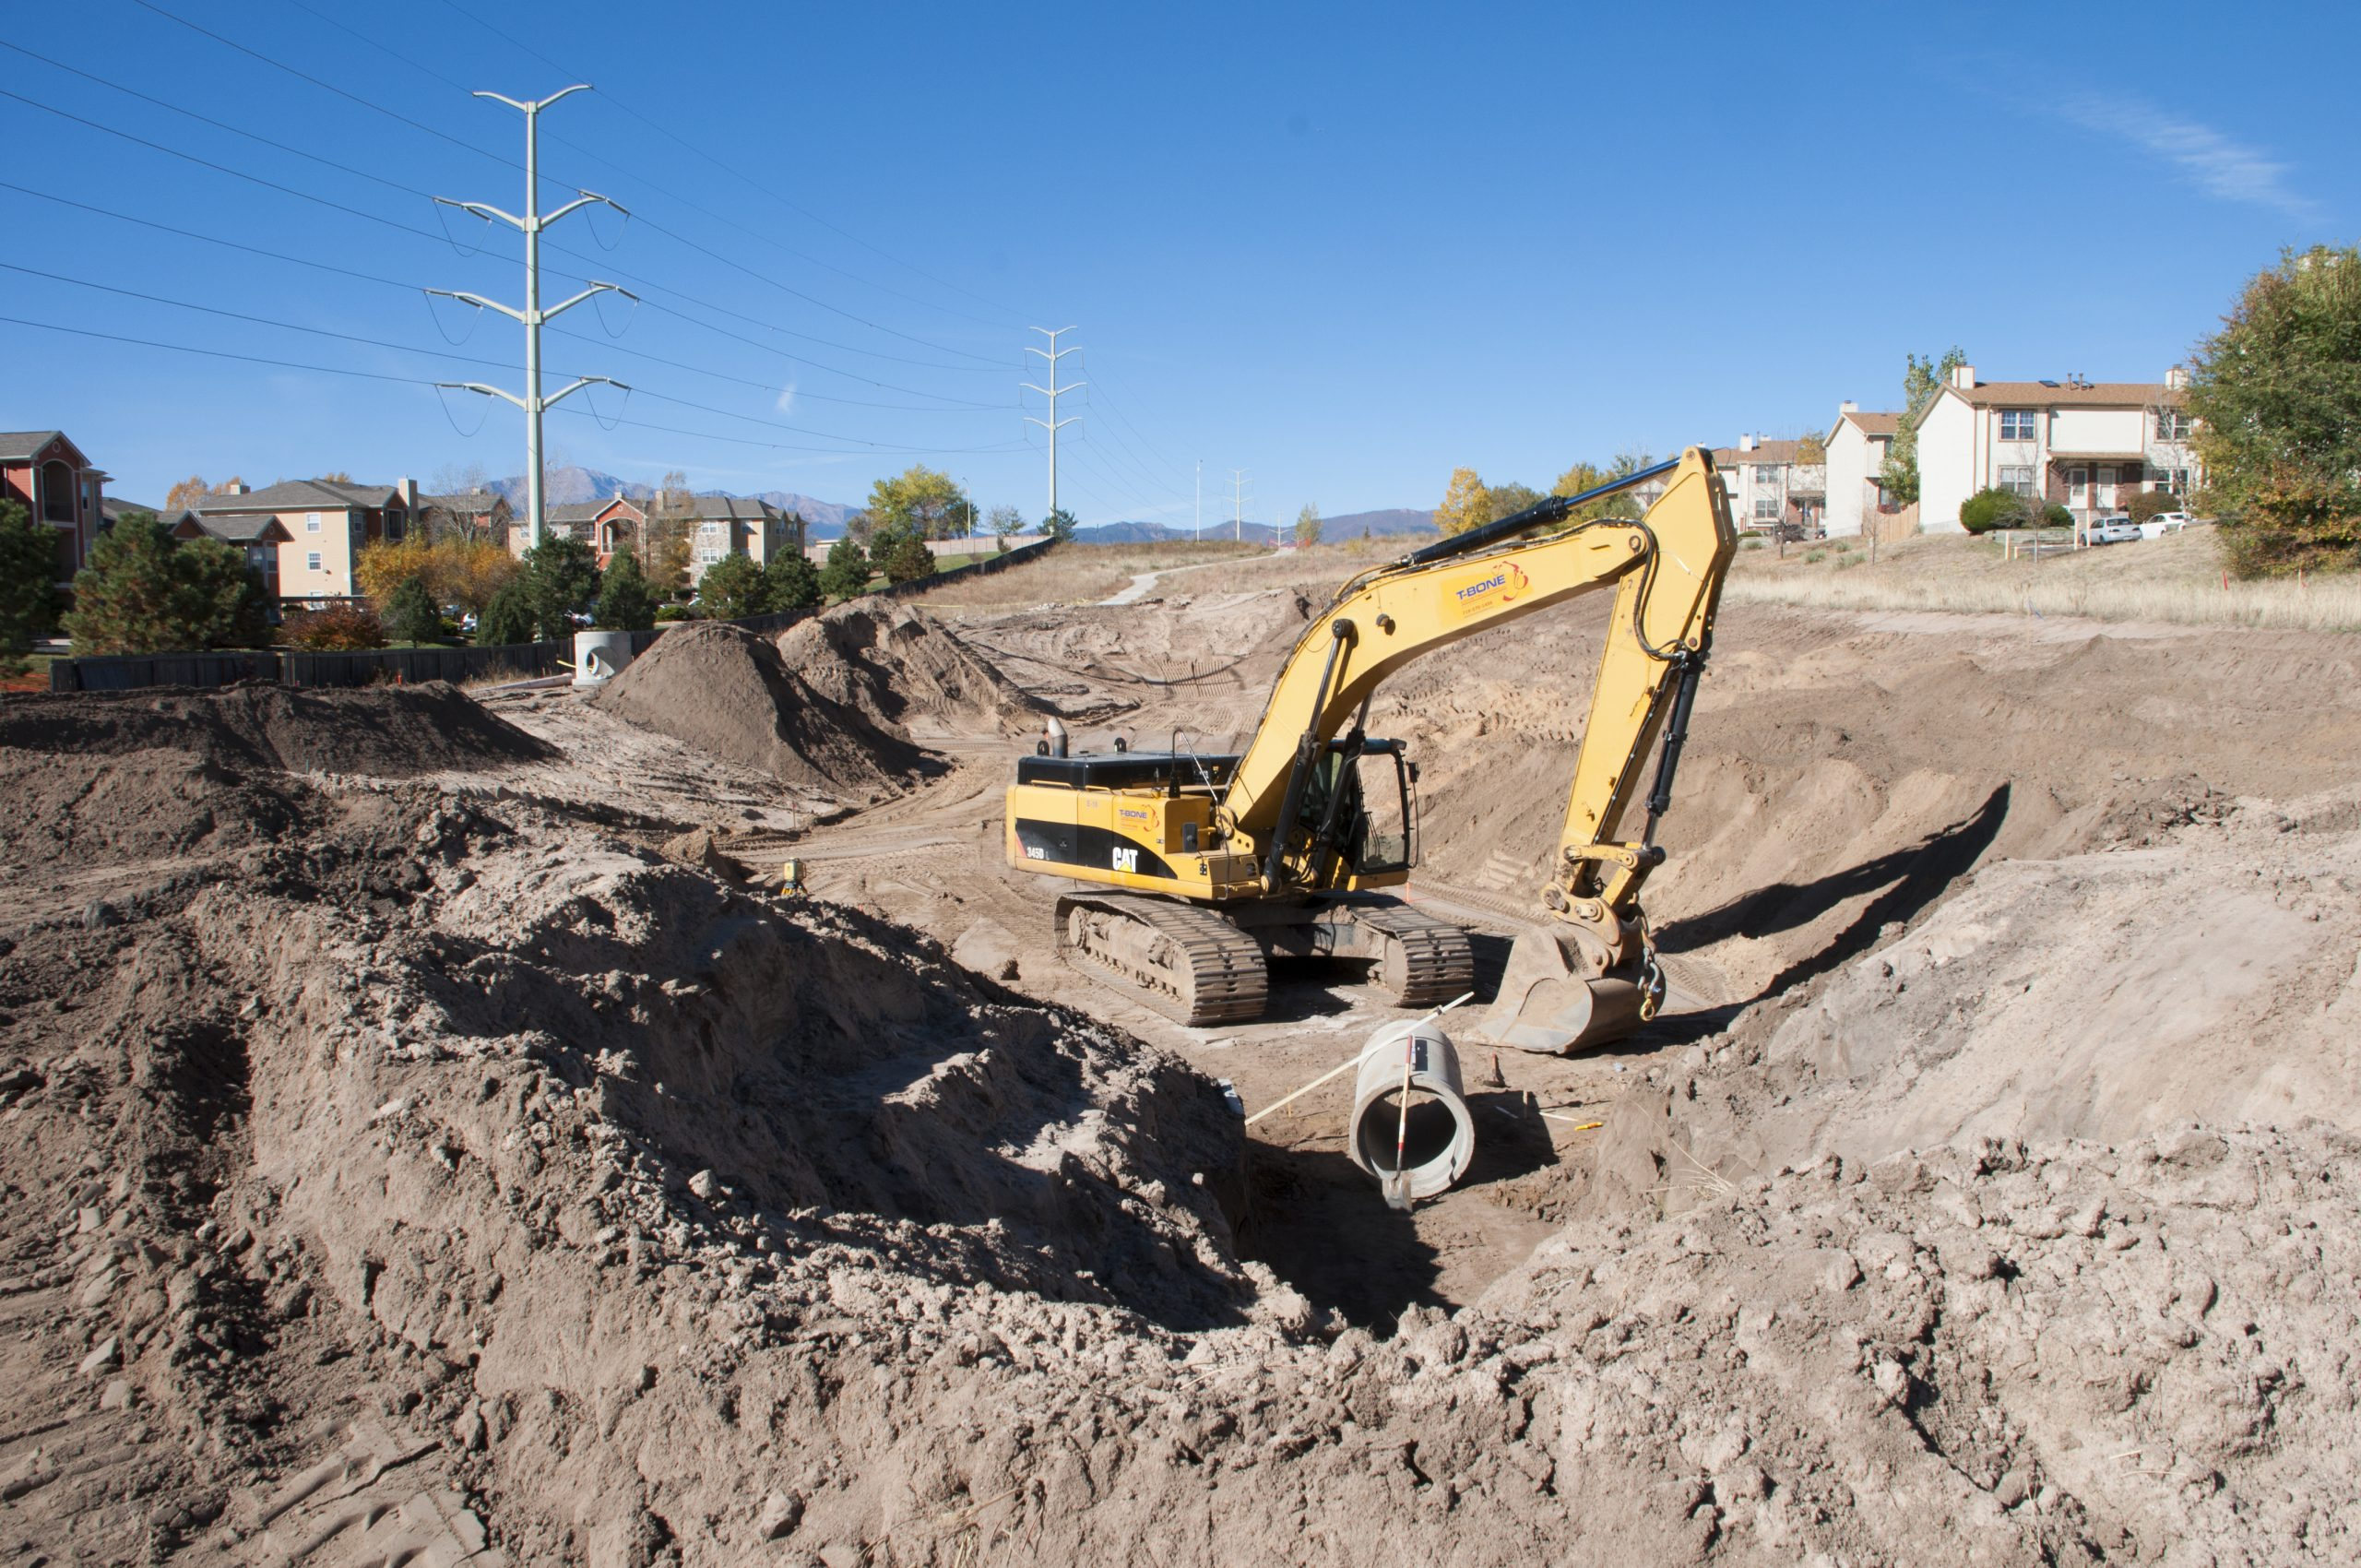 A construction crew works on a retention pond off Woodmen Road, one of 71 stormwater projects agreed to by the City of Colorado Springs as part of an intergovernmental agreement with Pueblo County.